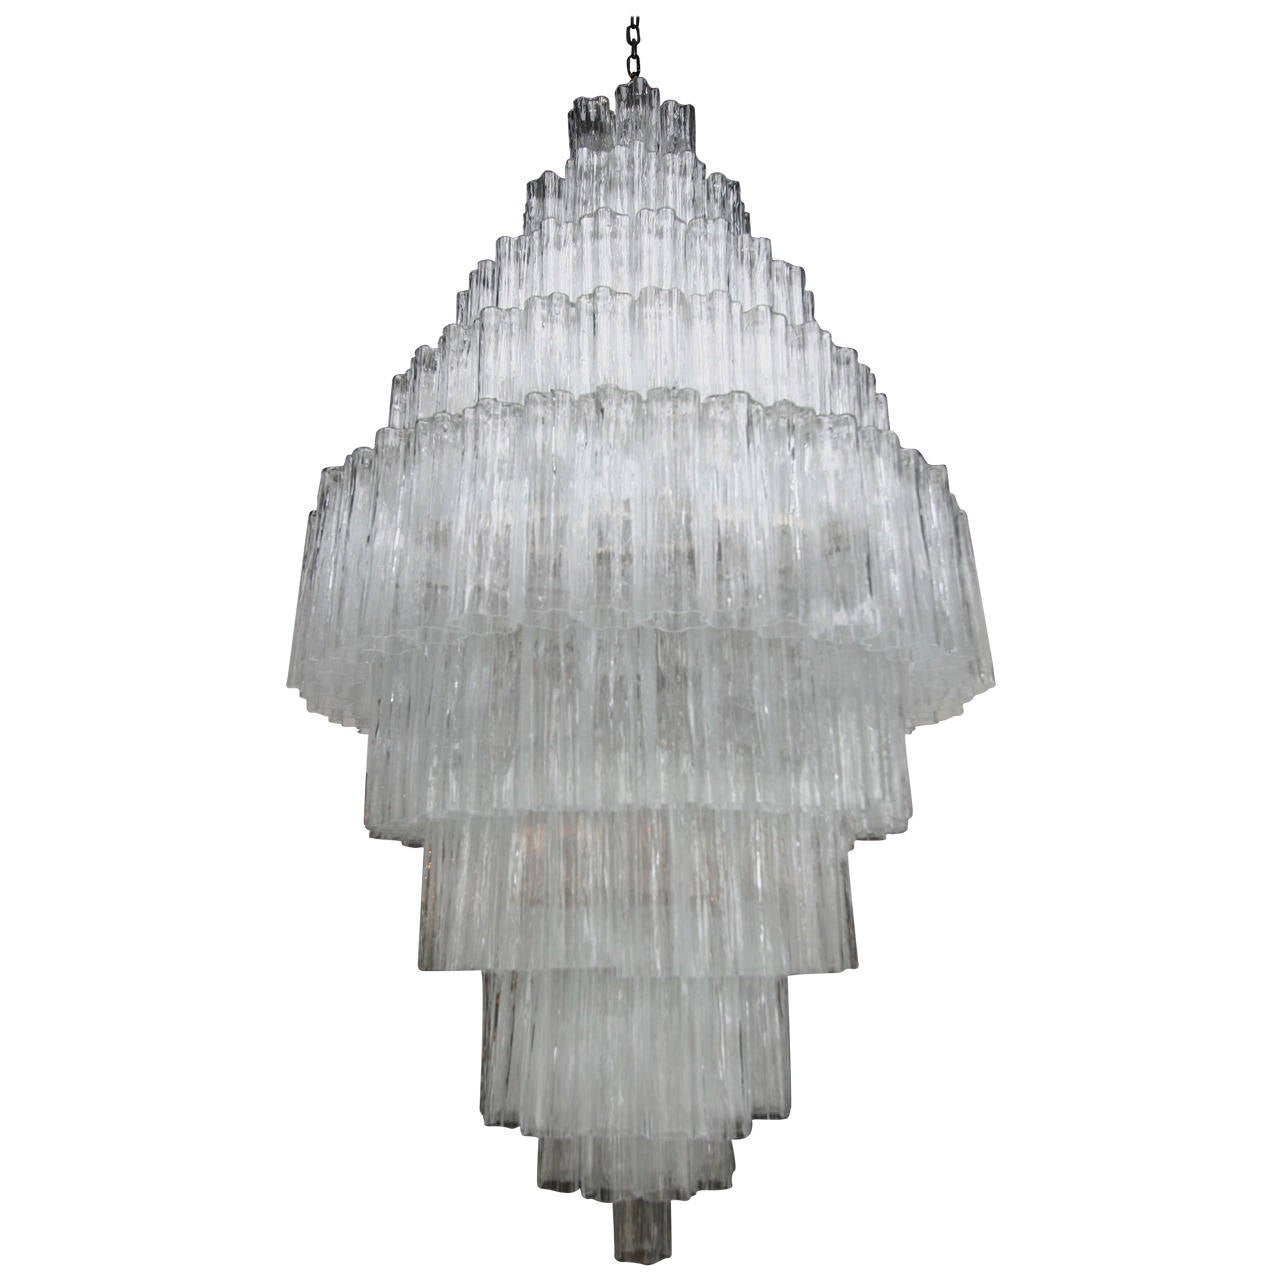 Tiered 1970s Murano Glass Chandelier